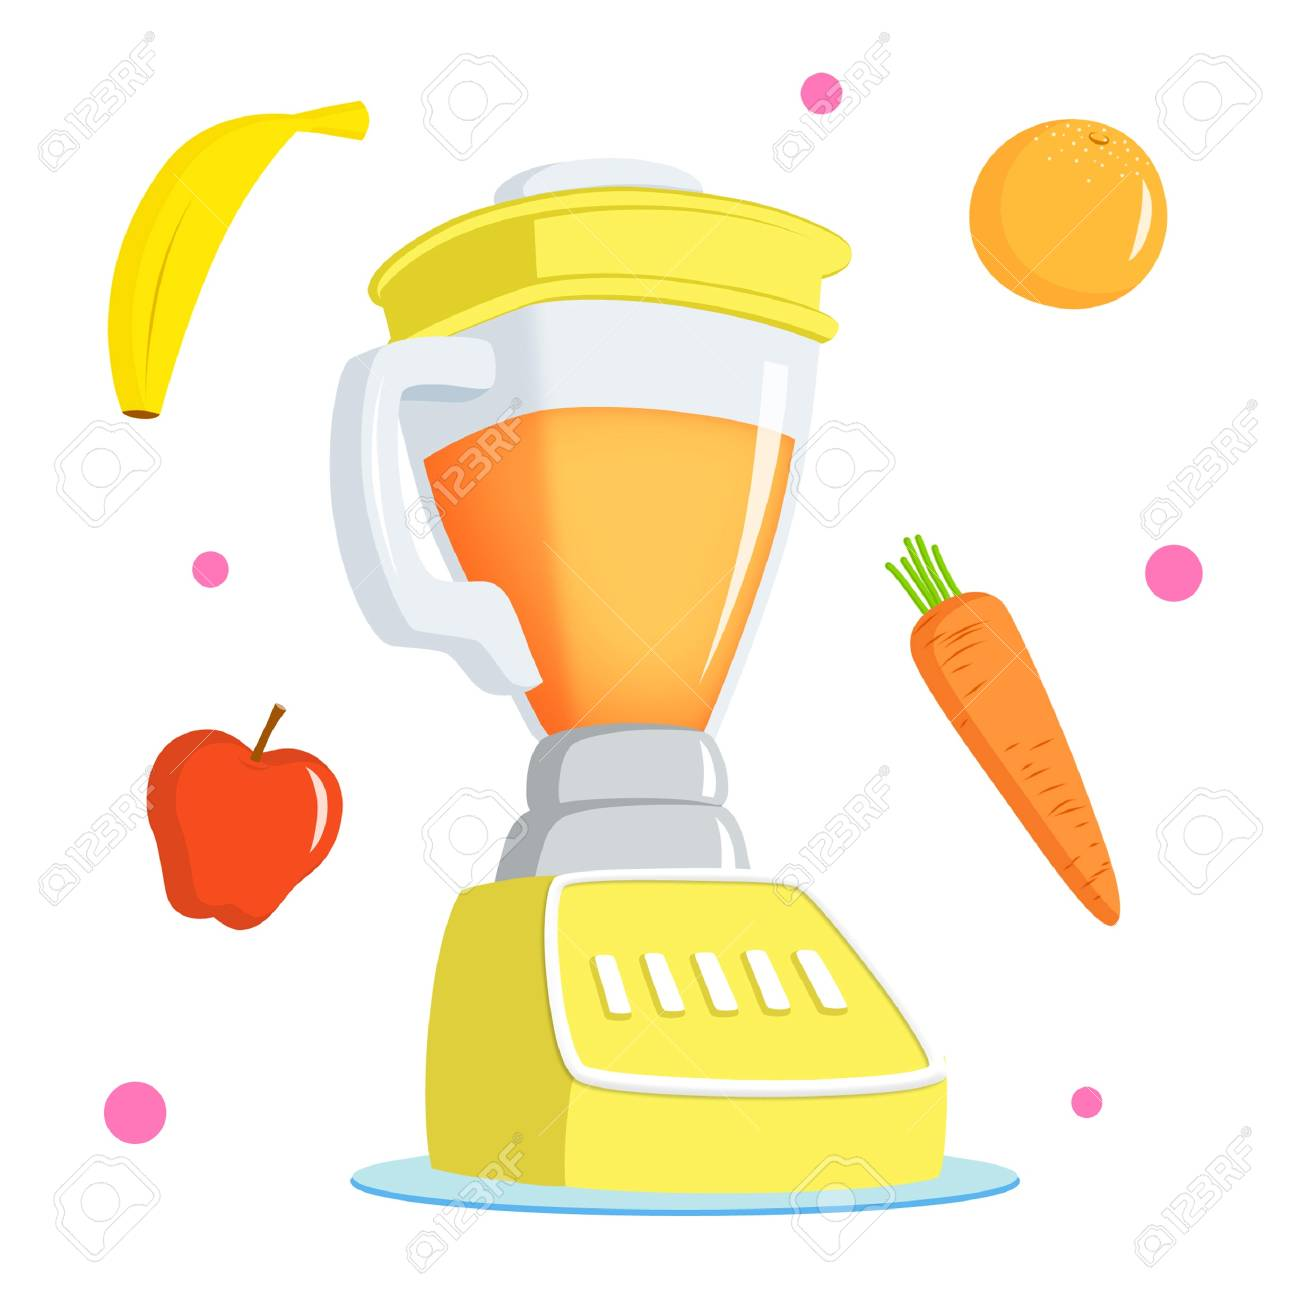 Cute juice with banana. Blender clipart happy